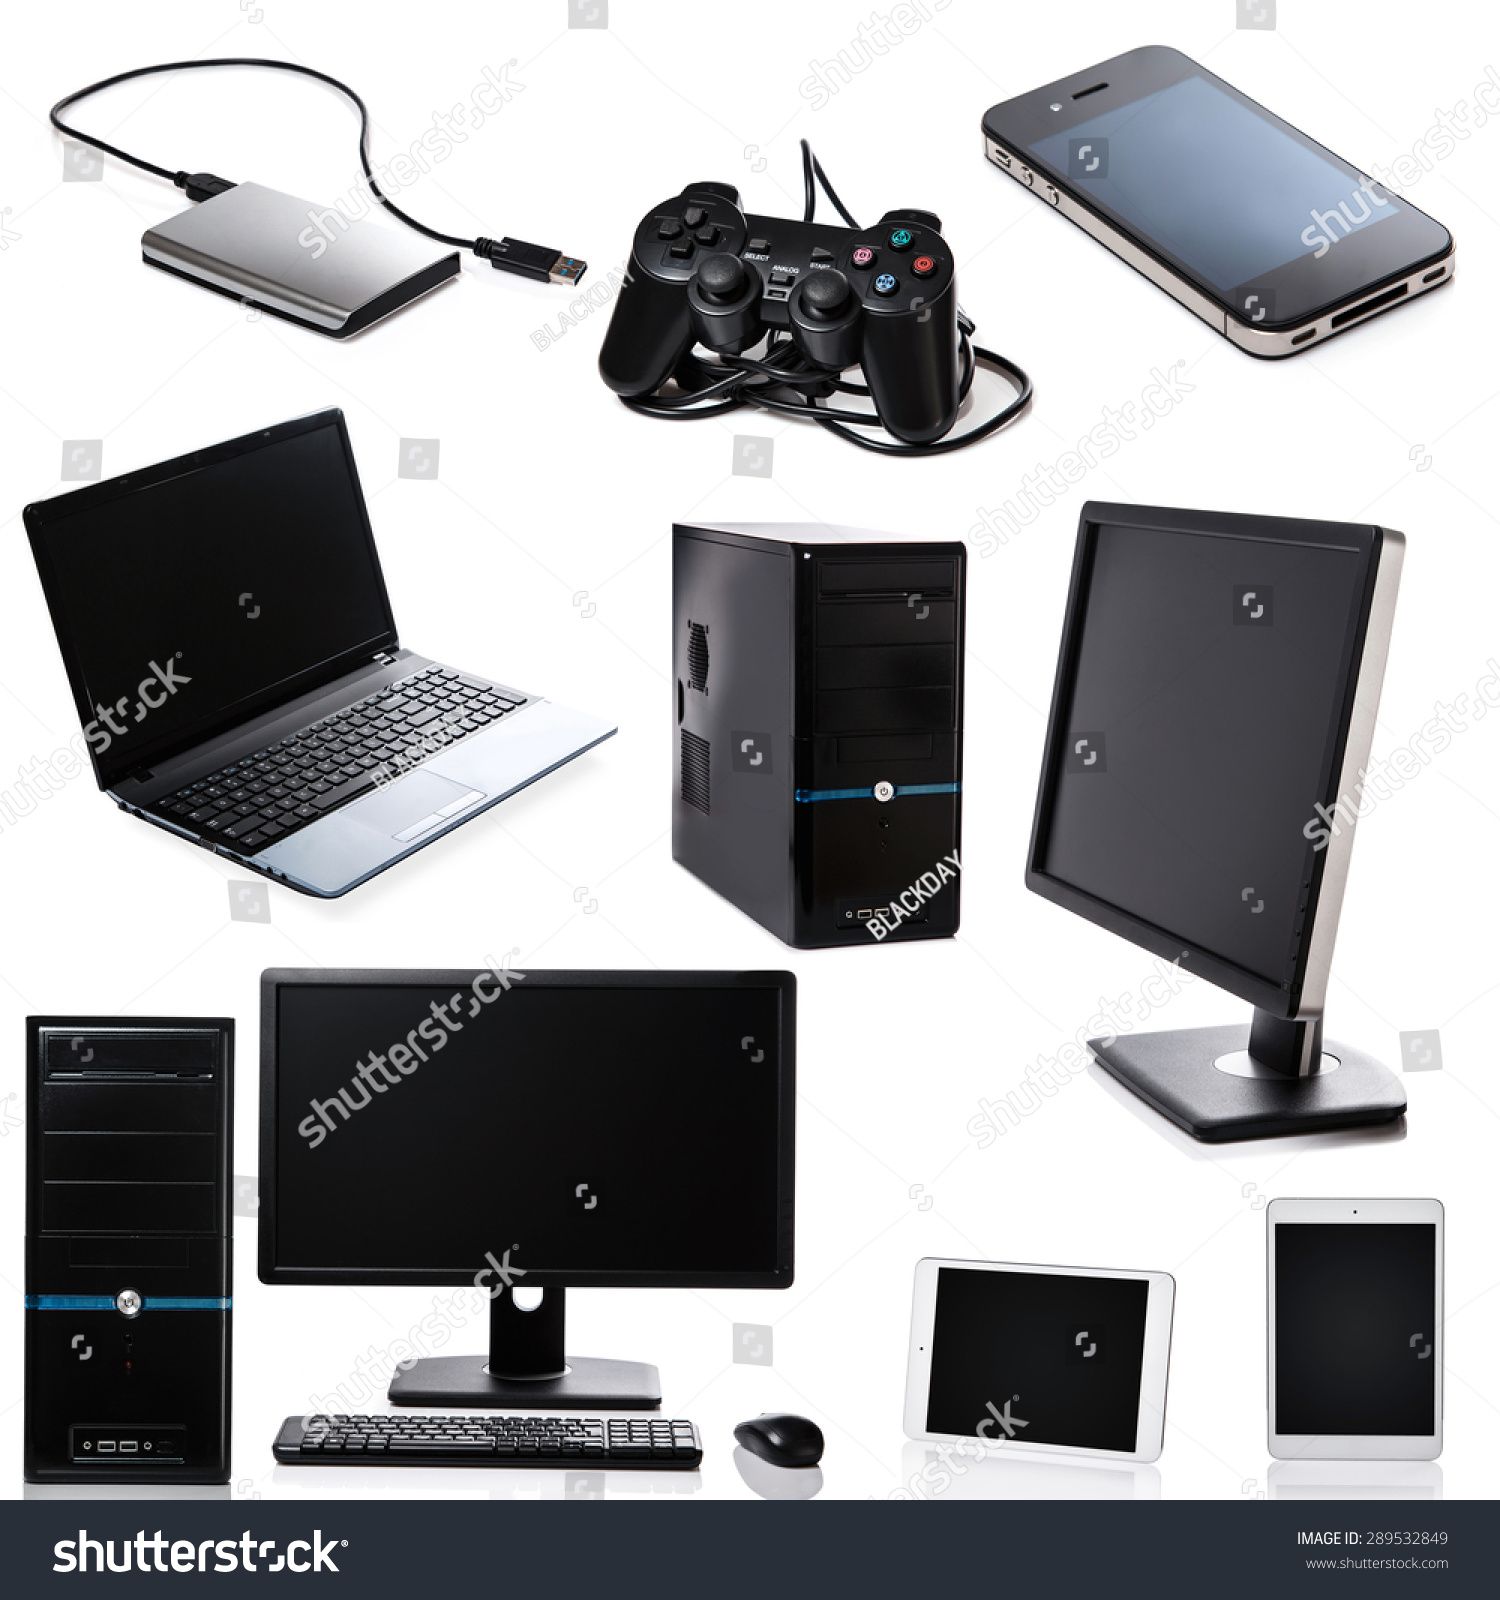 Set Different Computer Devices Hardware On Stock Photo